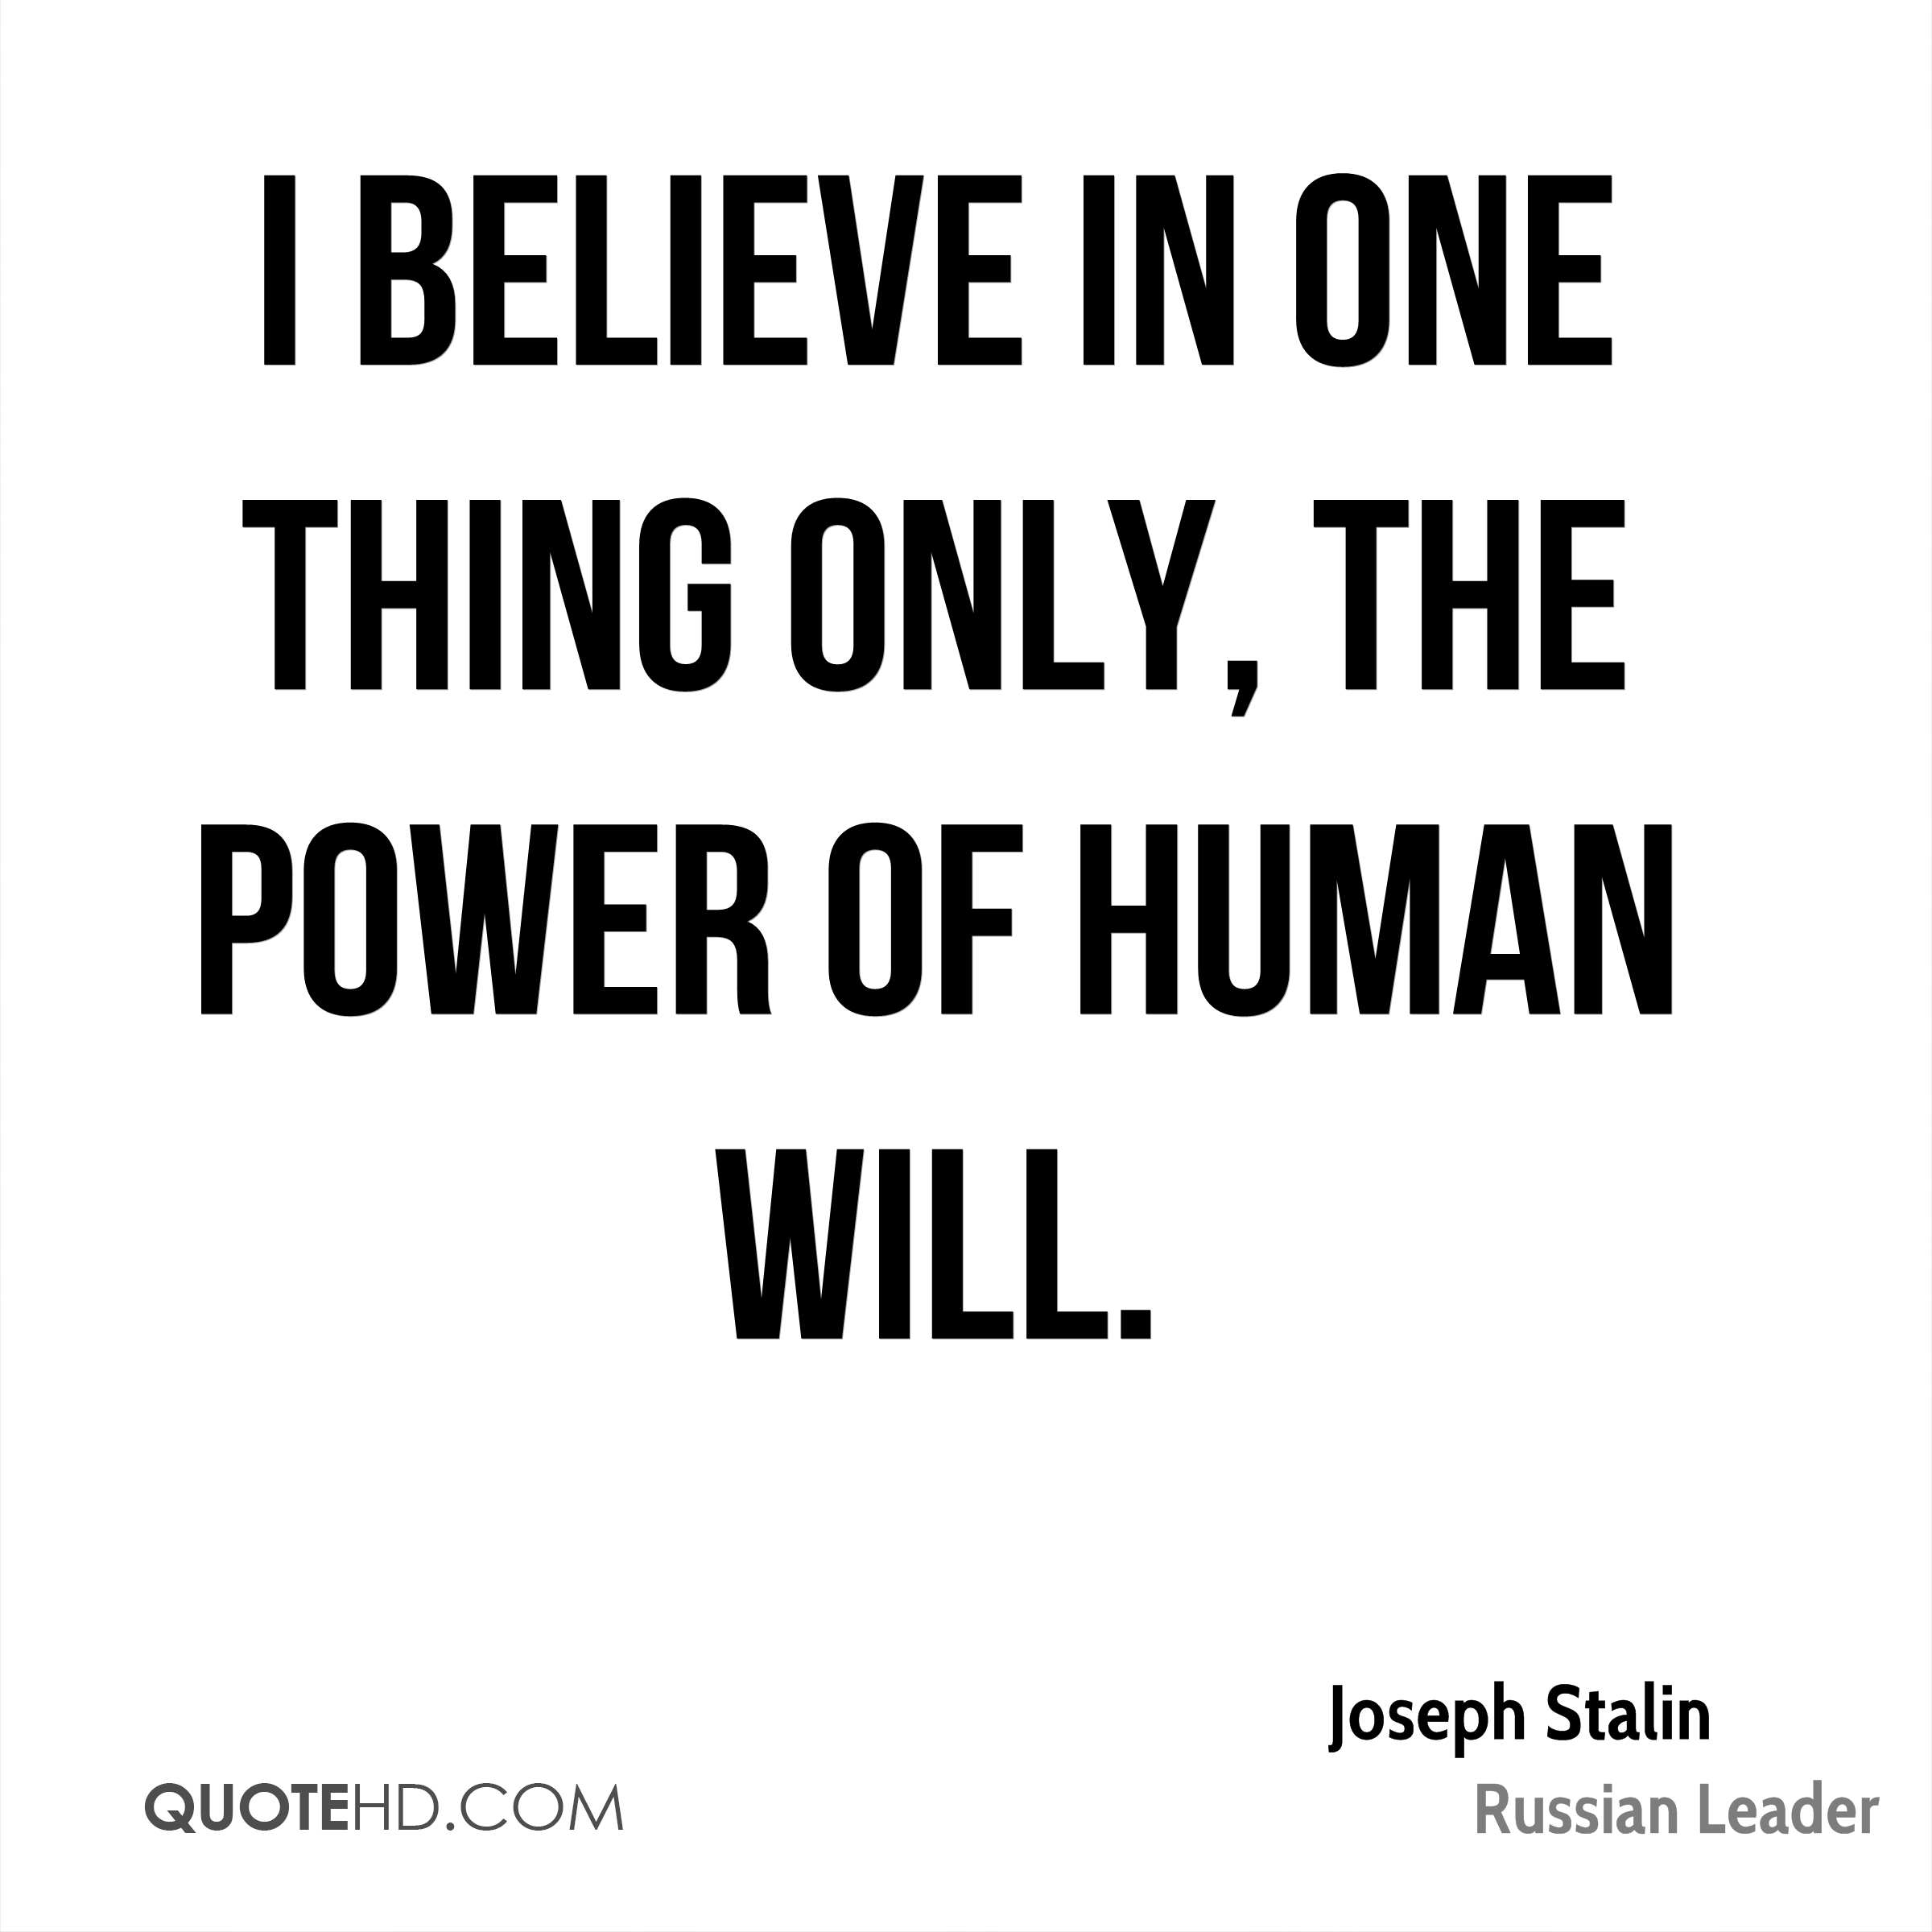 I believe in one thing only, the power of human will.